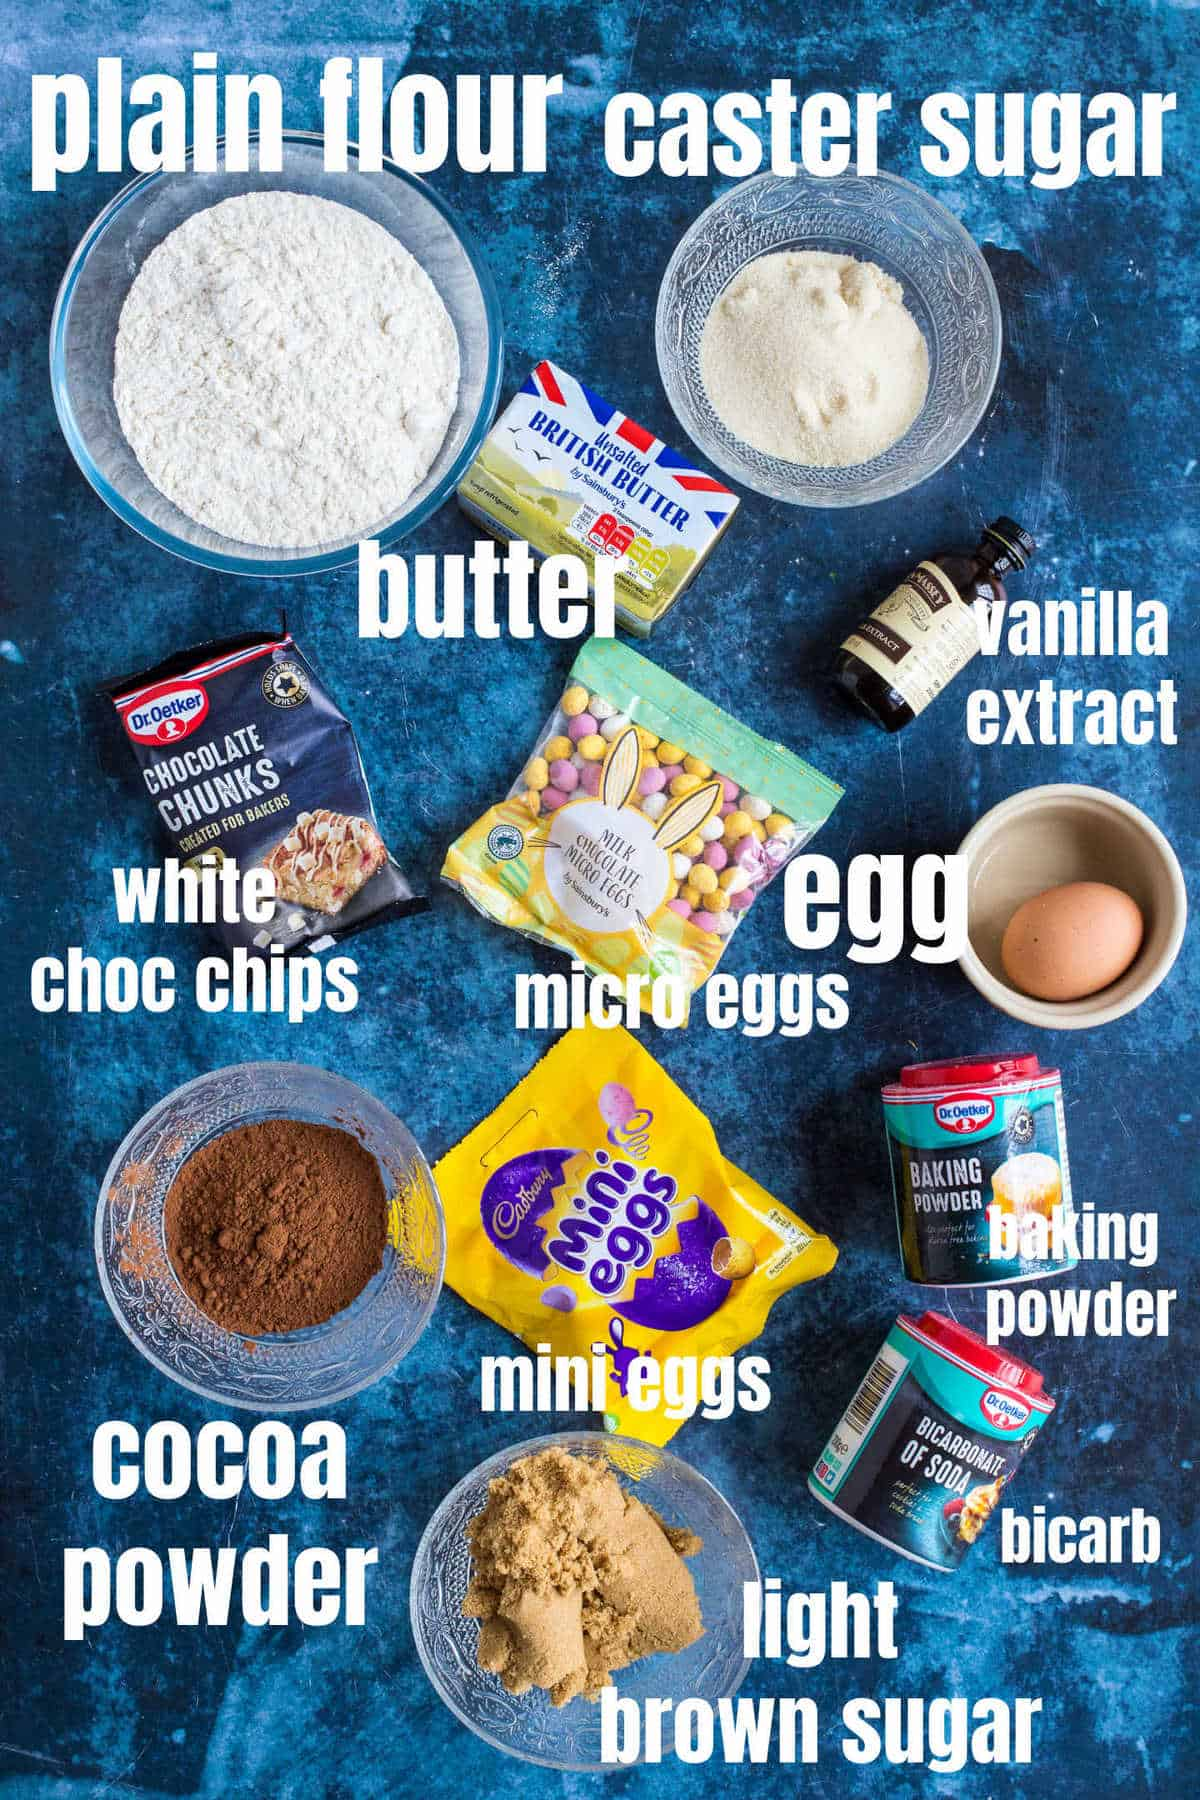 Ingredients for chocolate mini egg cookies.